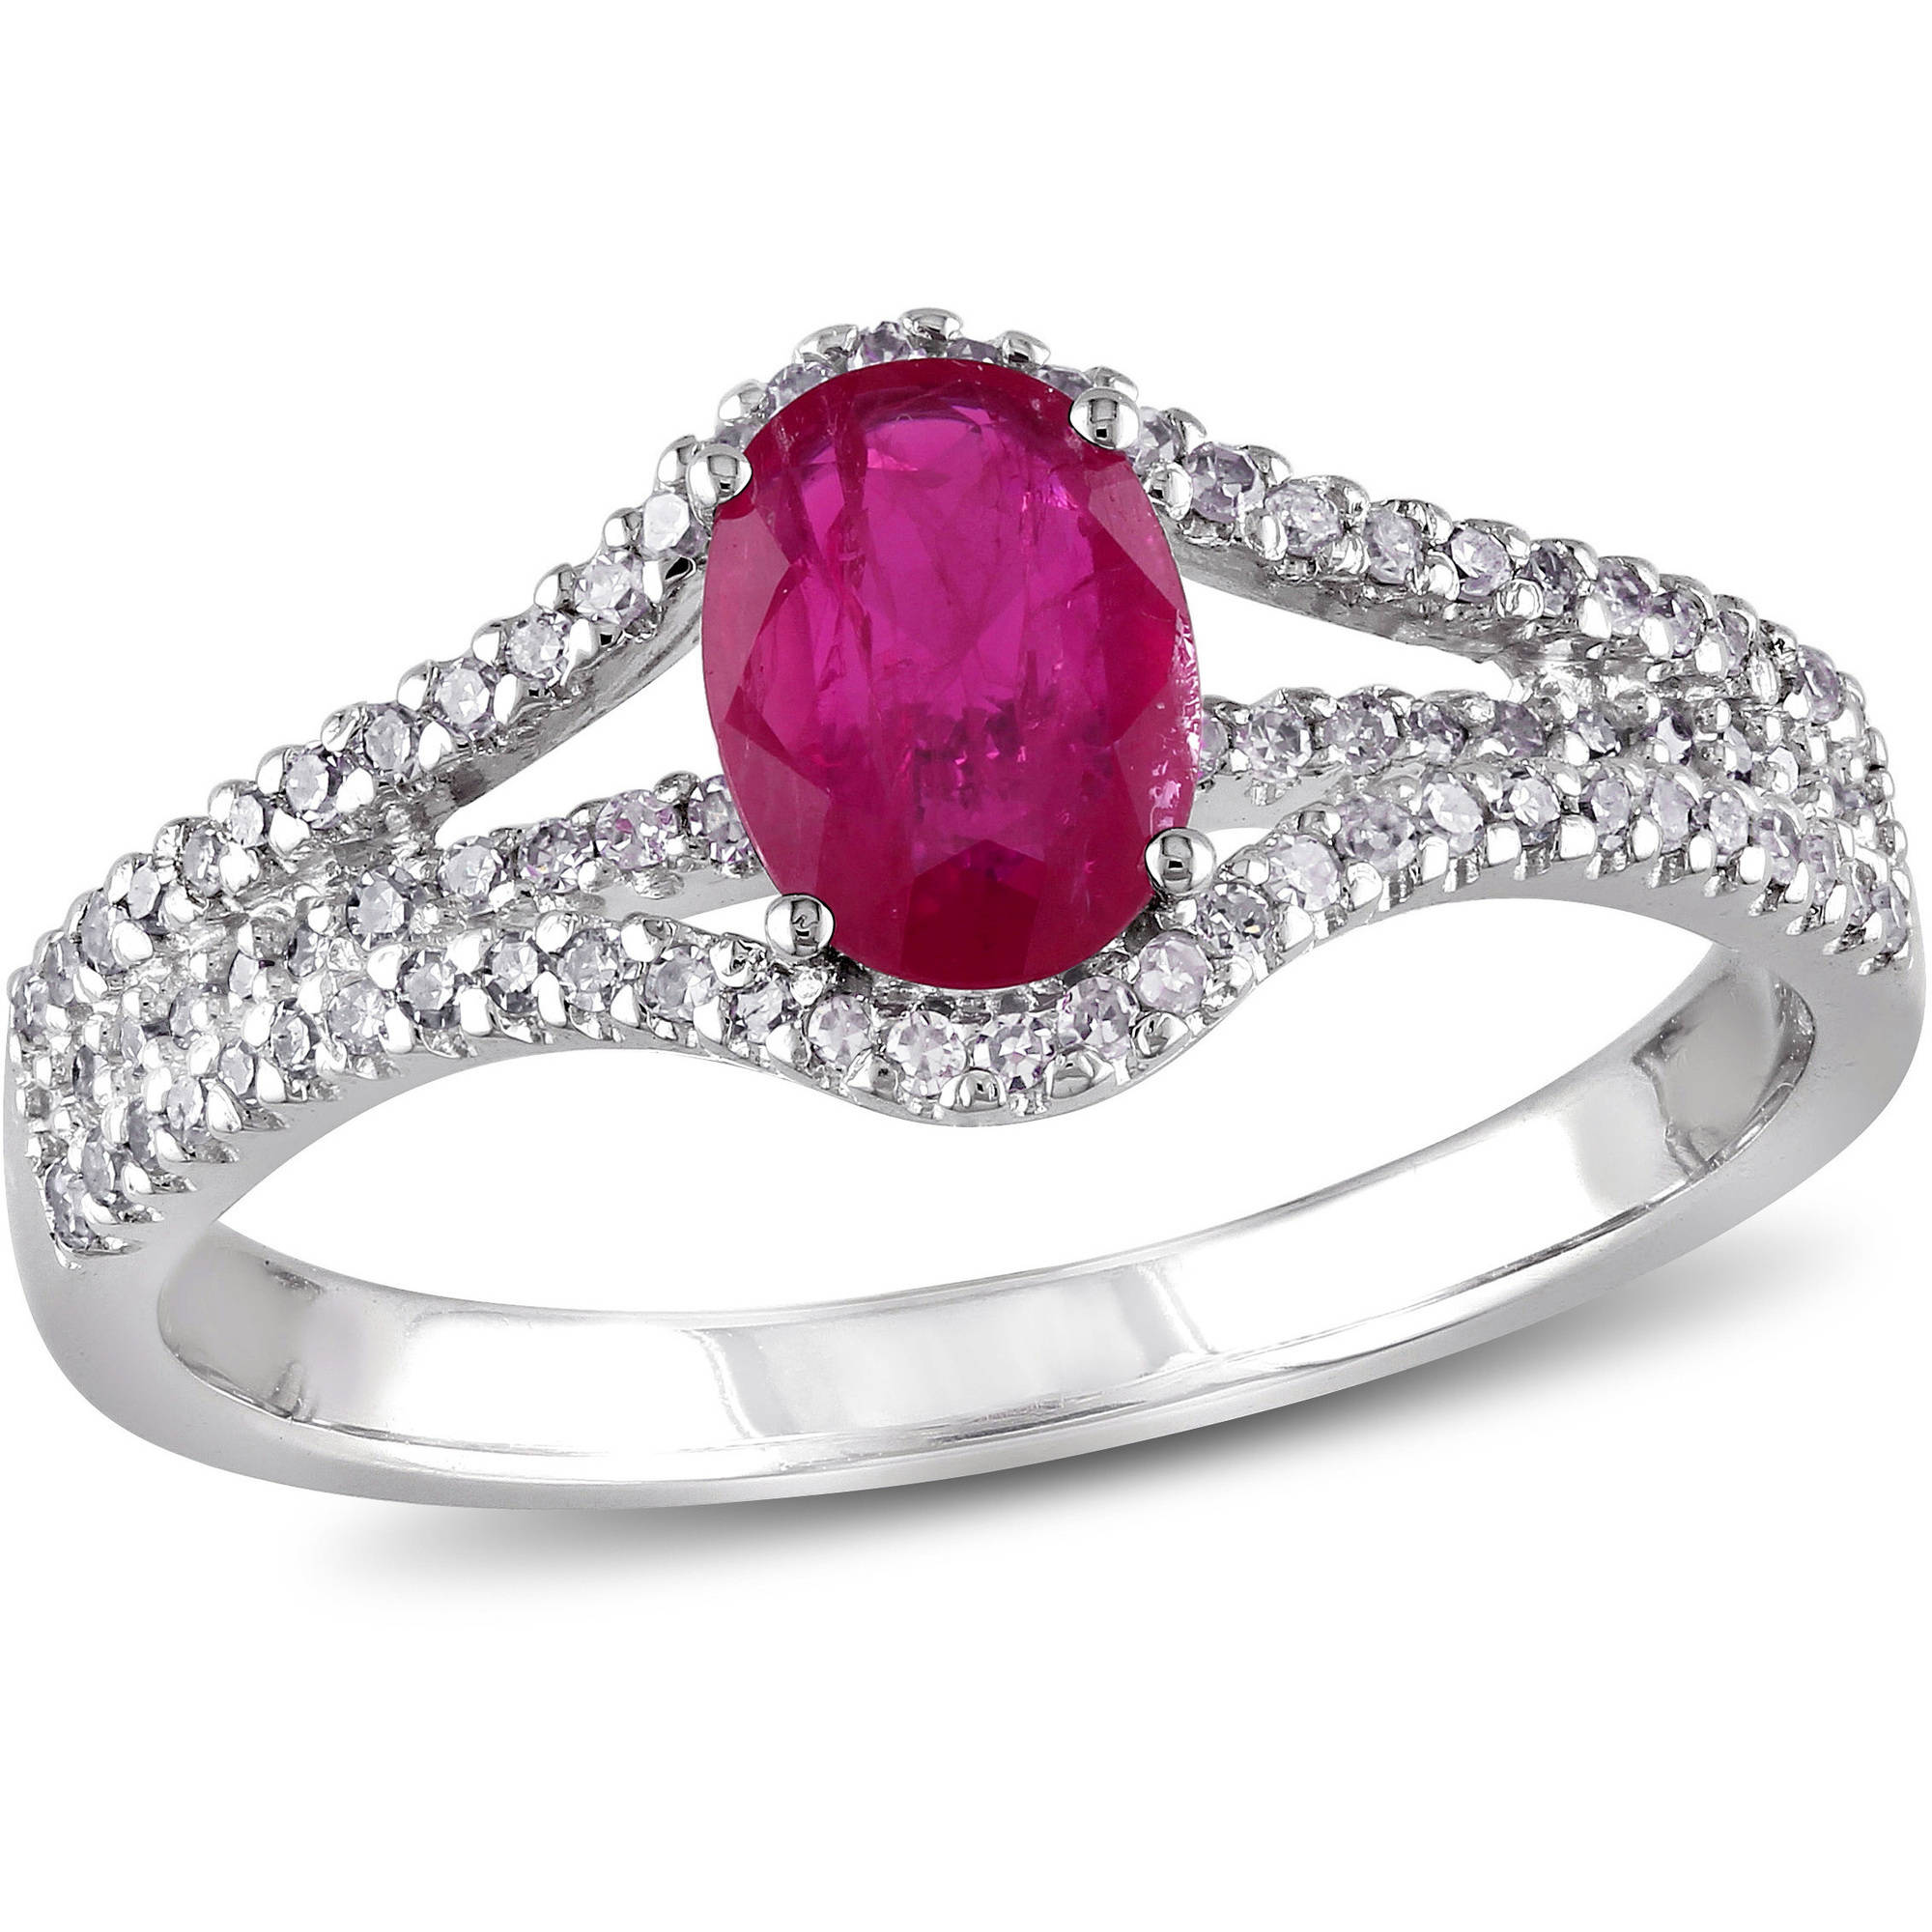 1 Carat T.G.W. Ruby and 1 4 Carat T.W. Diamond 10kt White Gold Three-Row Engagement Ring by Generic